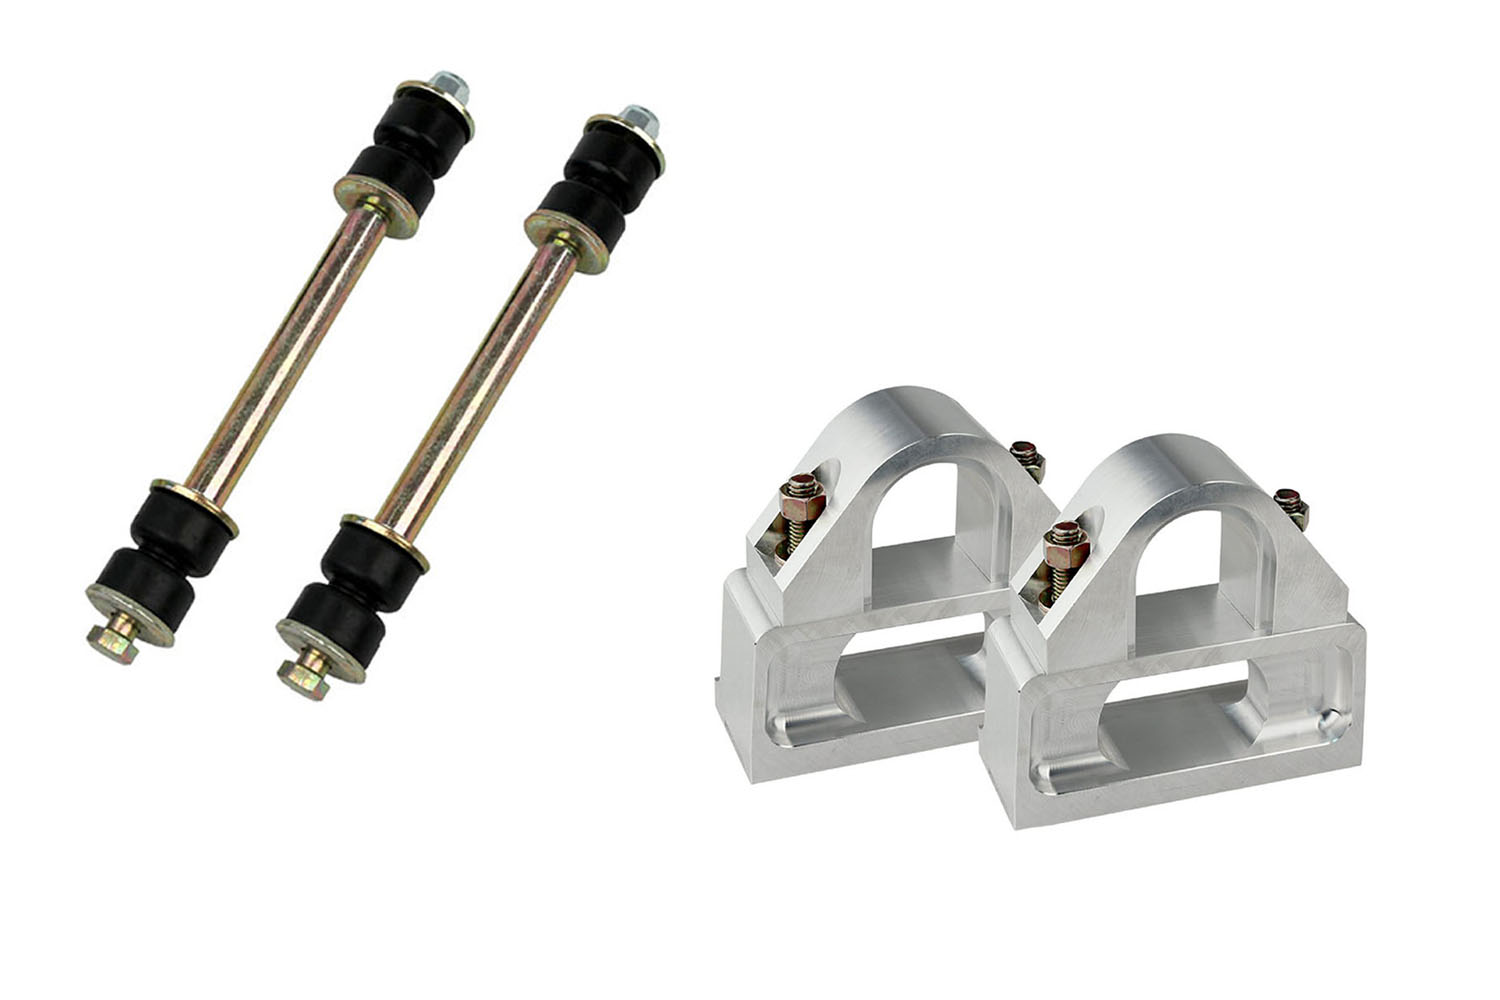 Sway Bar Endlinks & Mounts